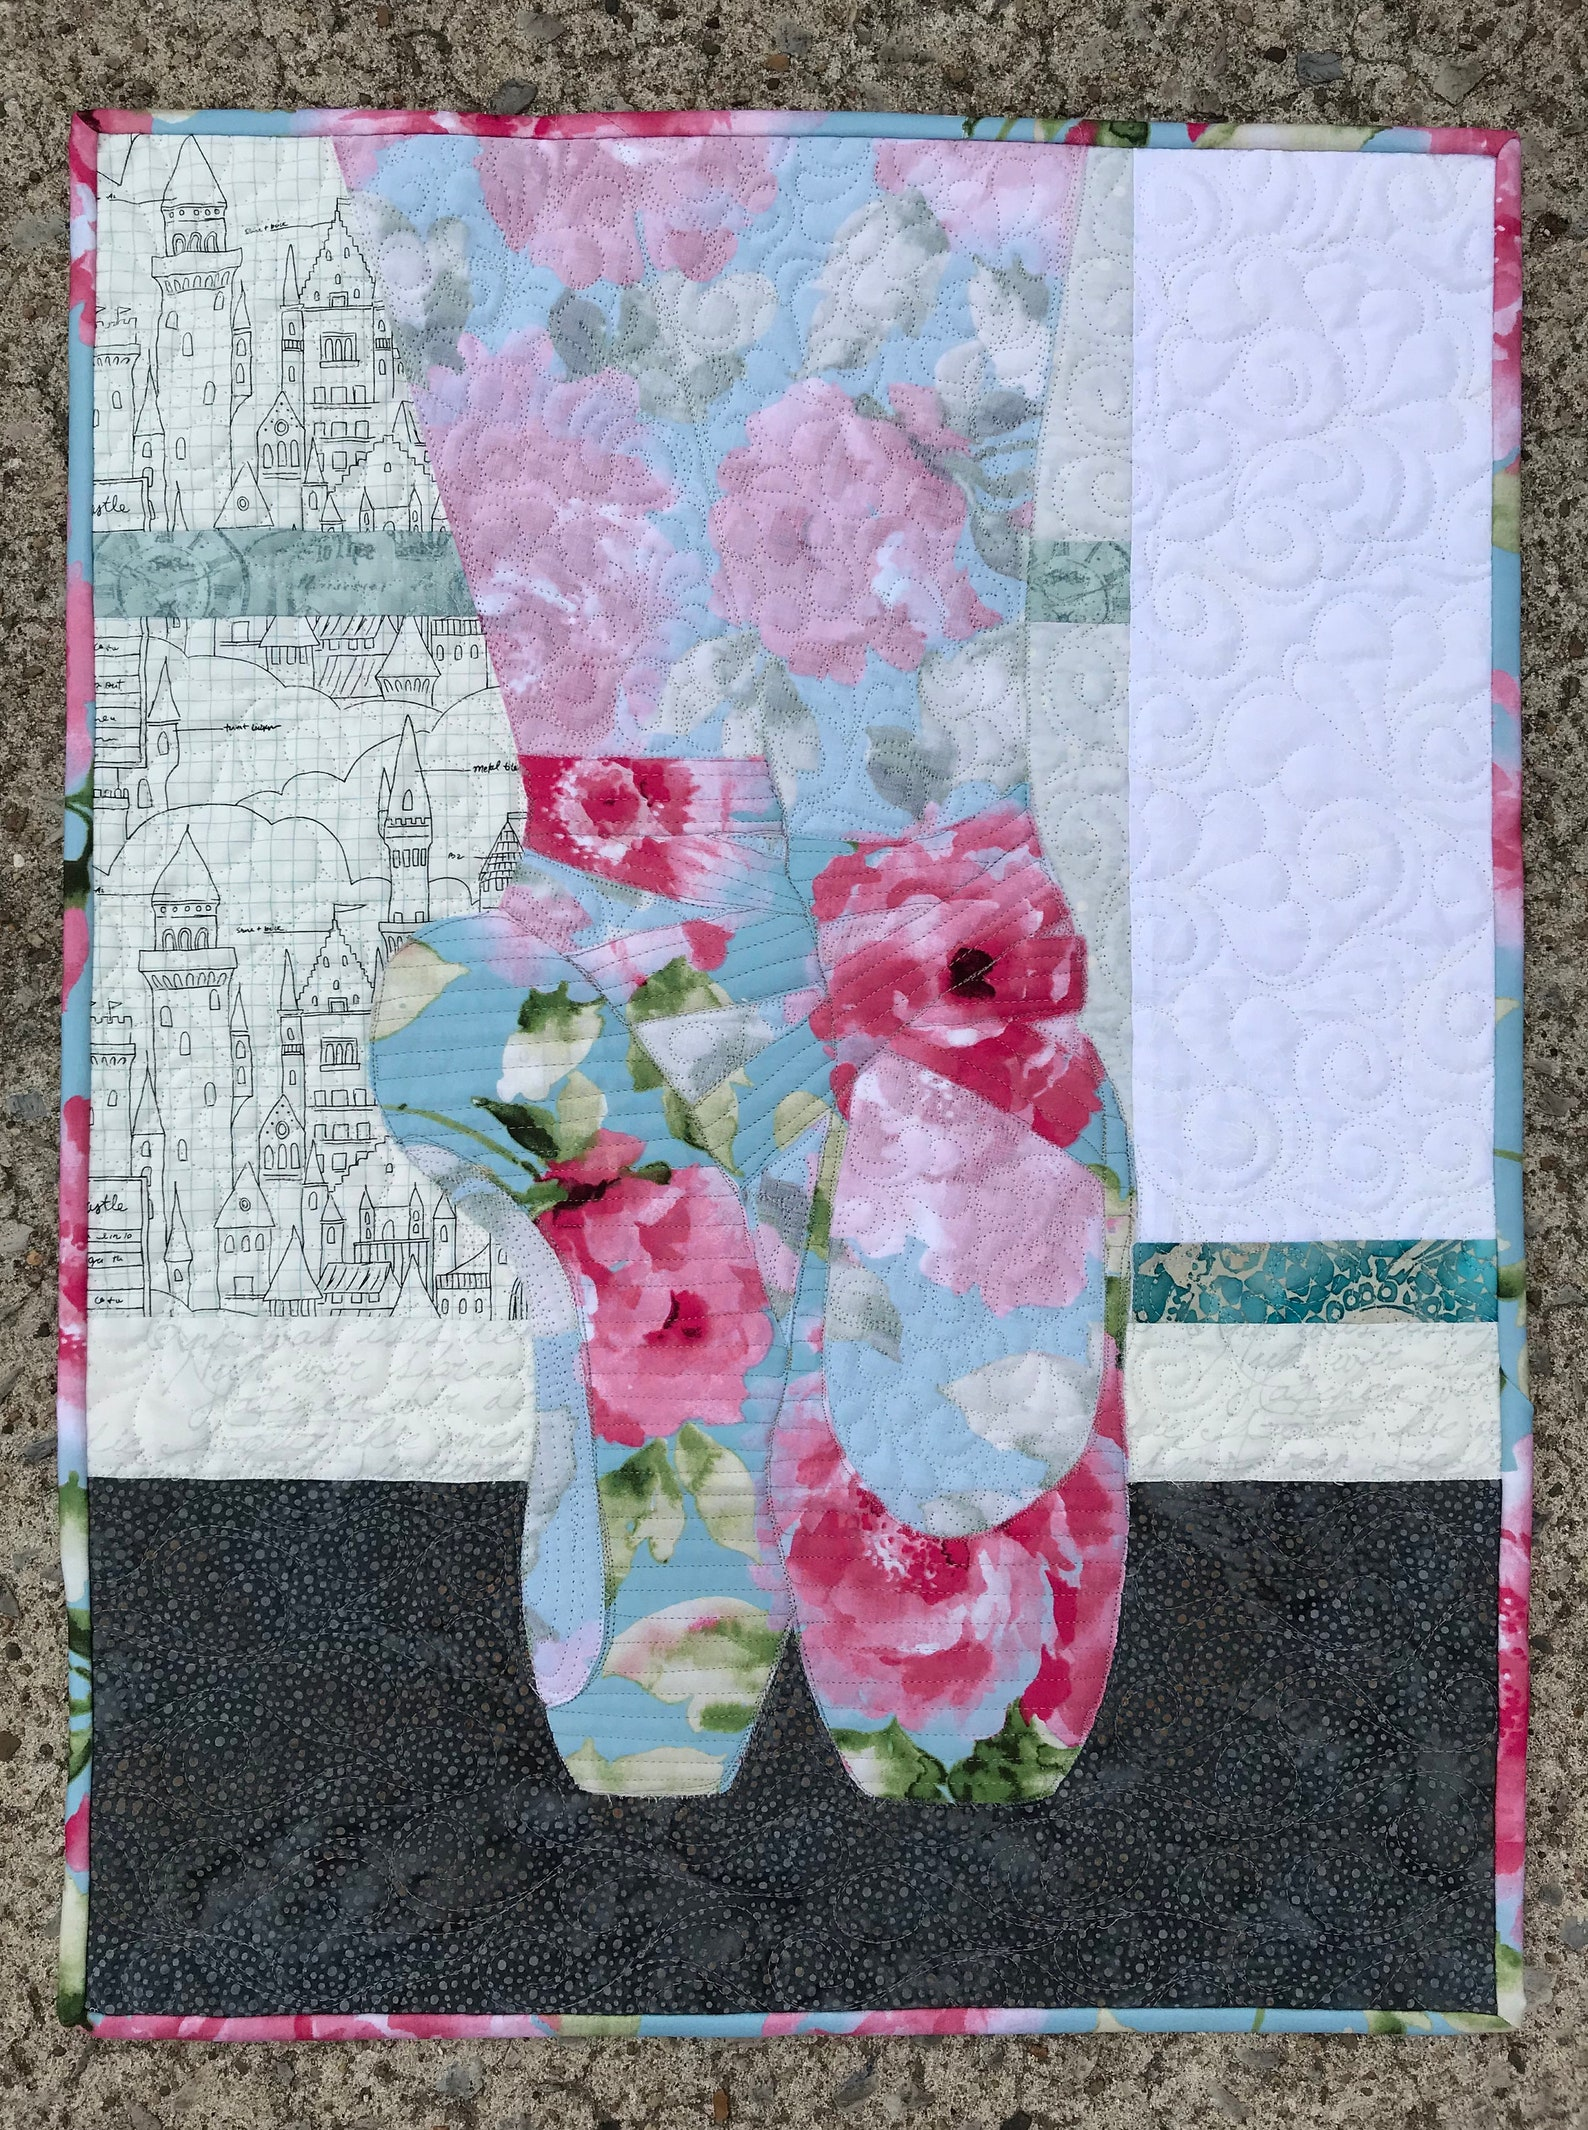 quilt patterns/ballet shoes pattern/quilted wall hanging/pointe shoes/ballerina quilts/fusible applique/art quilts/use both side